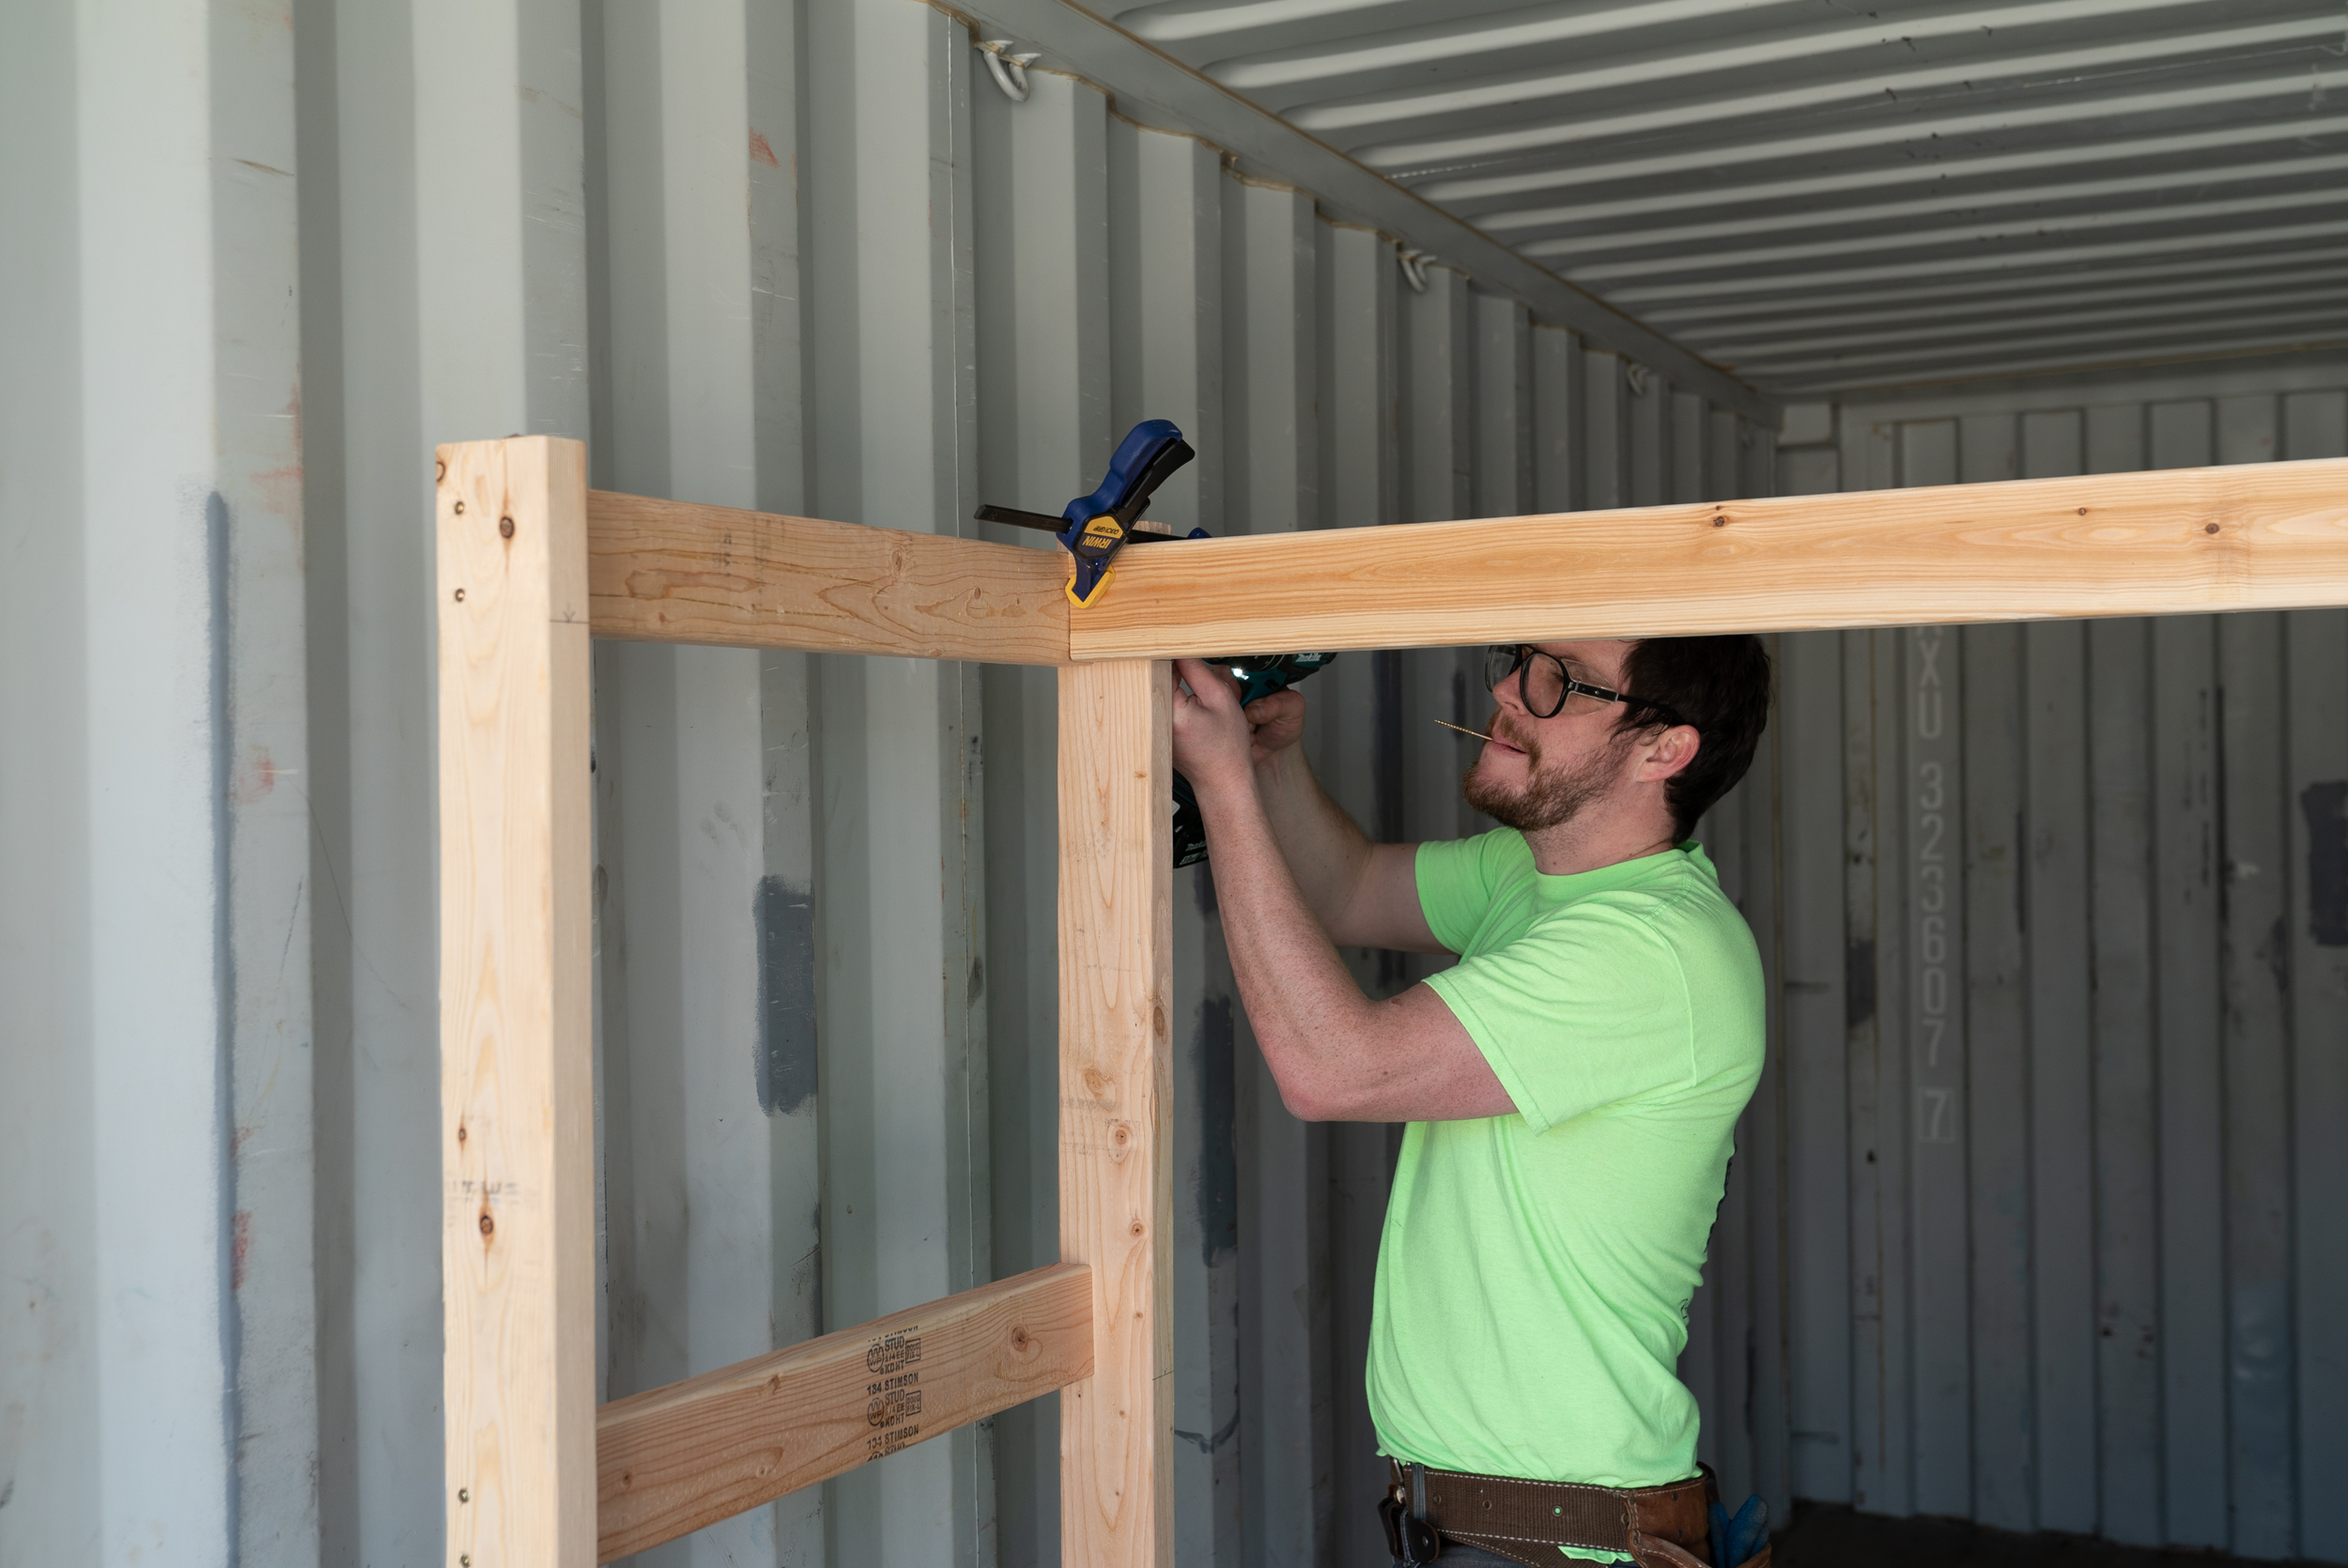 Stephen helps build out shipping containers for bike rentals and storage.